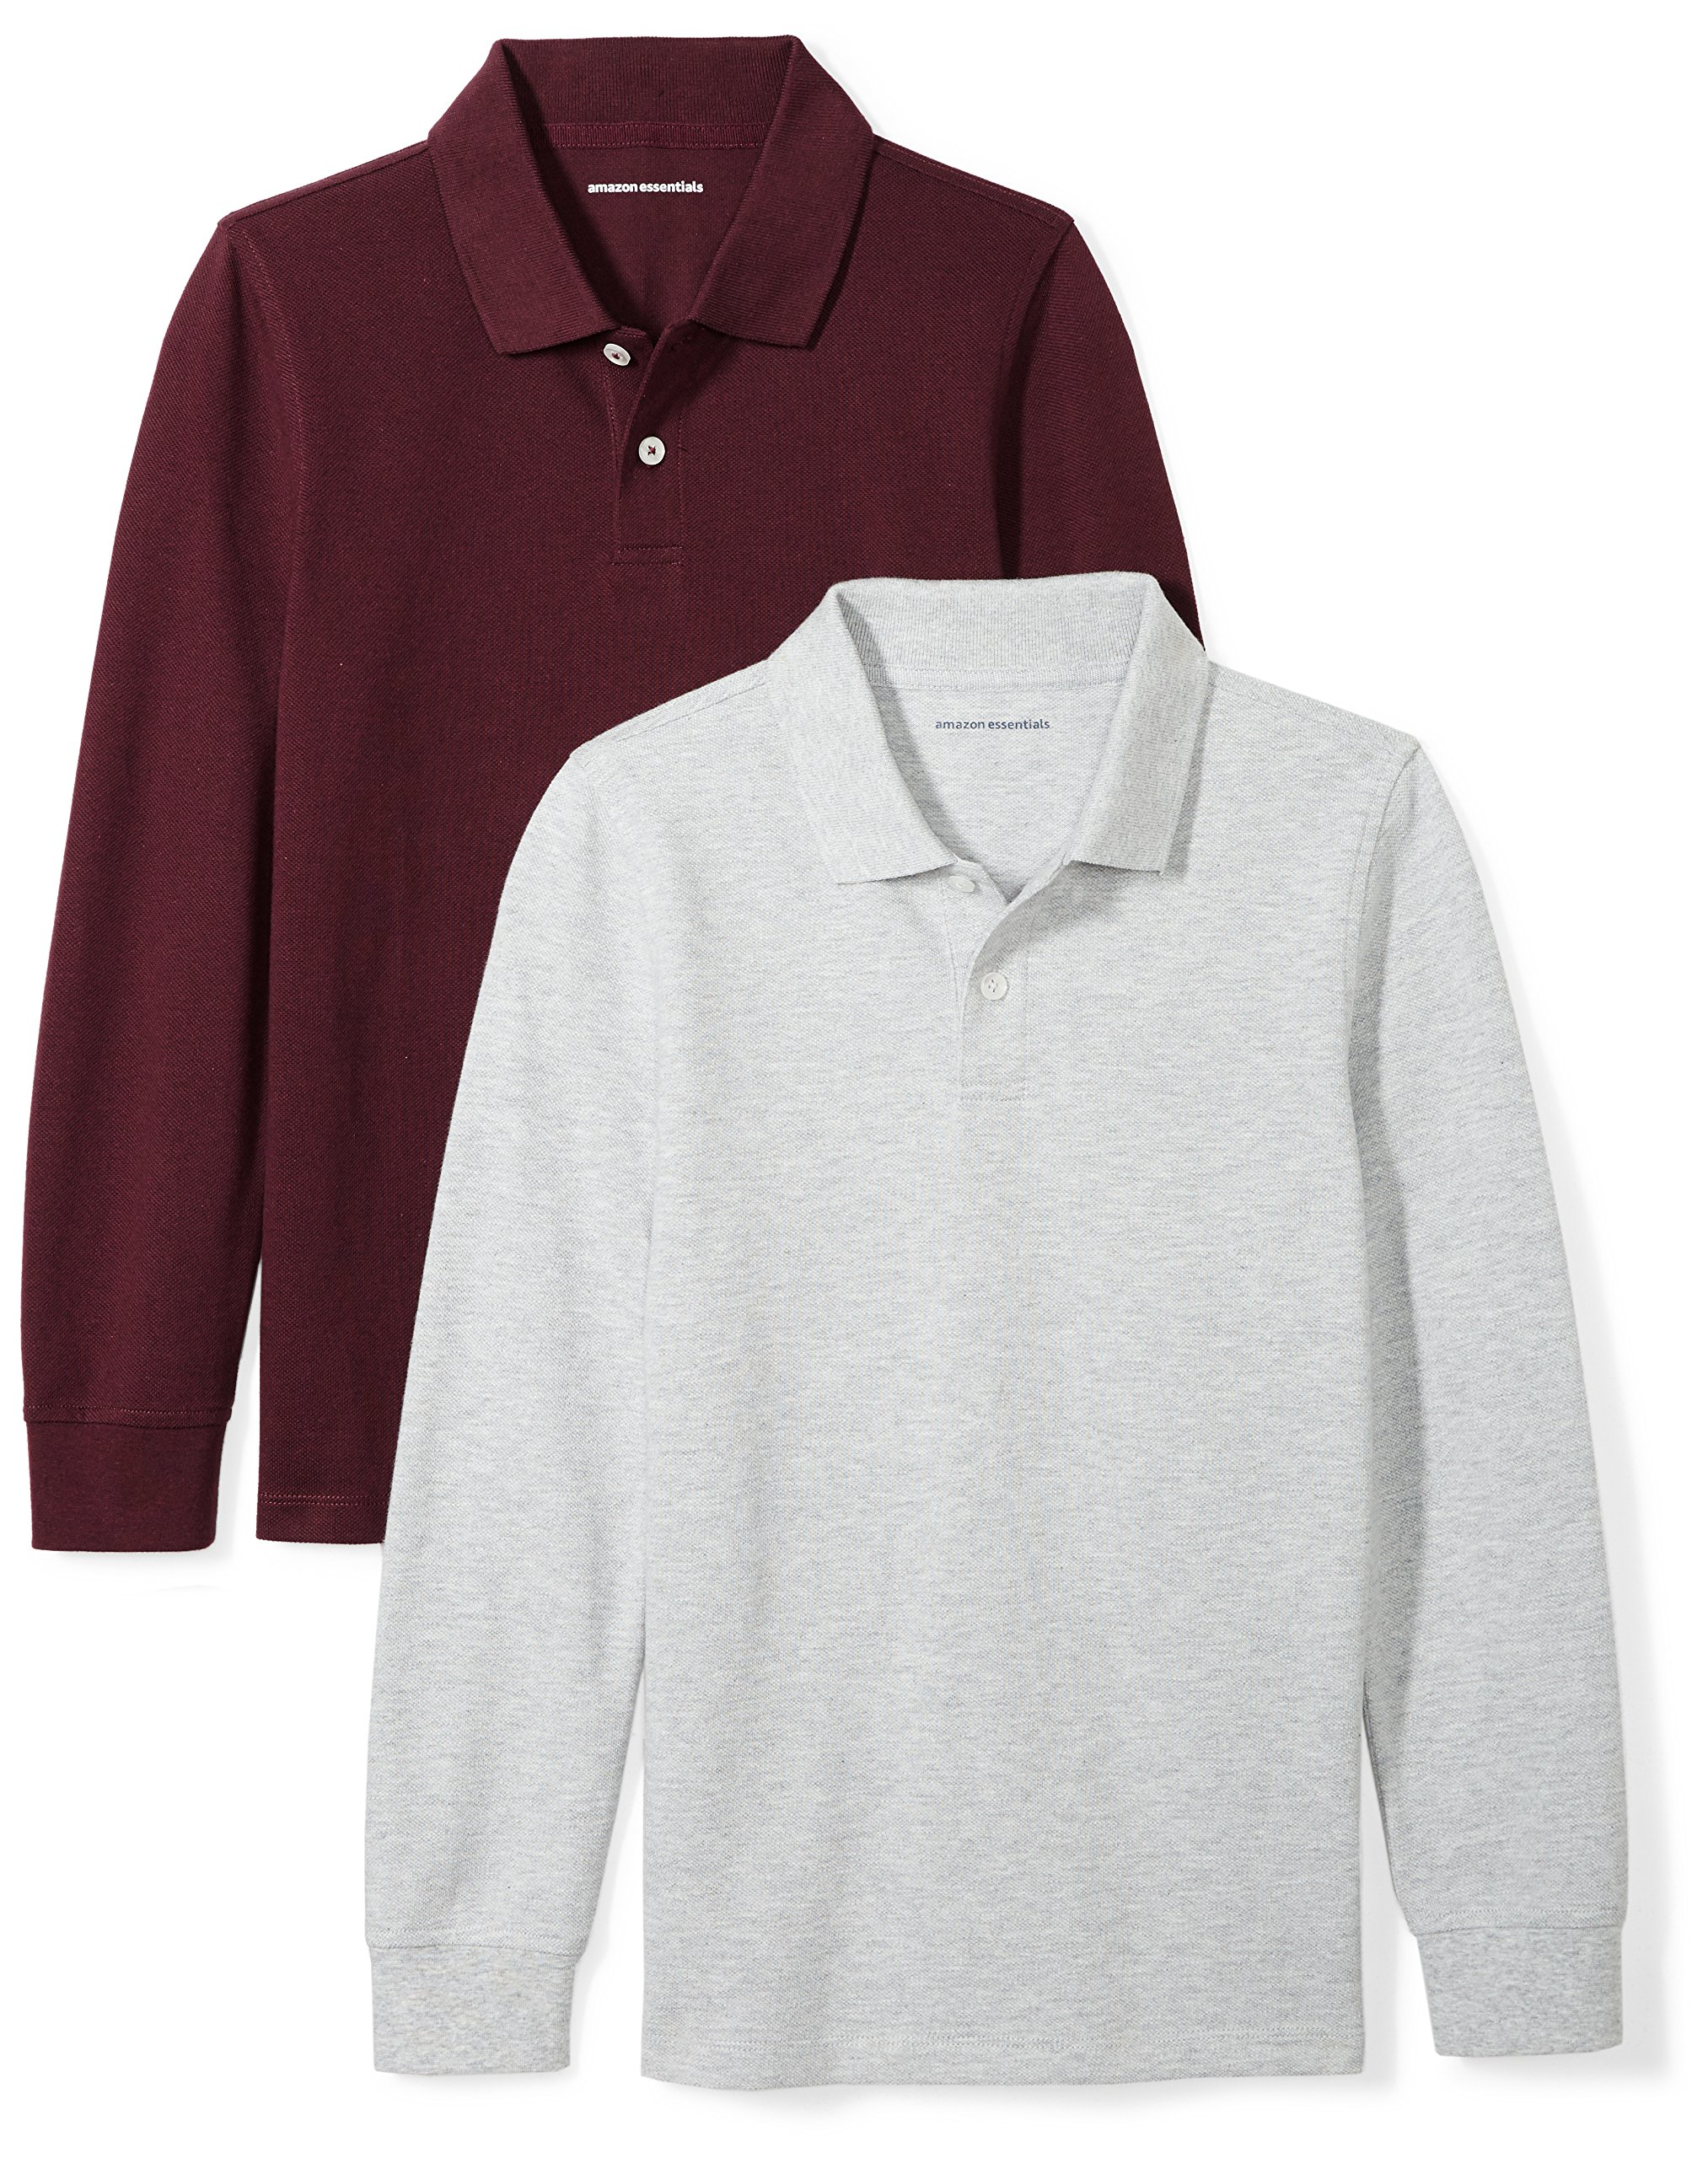 Amazon Essentials Boys' 2-Pack Long-Sleeve Pique Polo Shirt, Burgundy/Heather Grey, M (8)